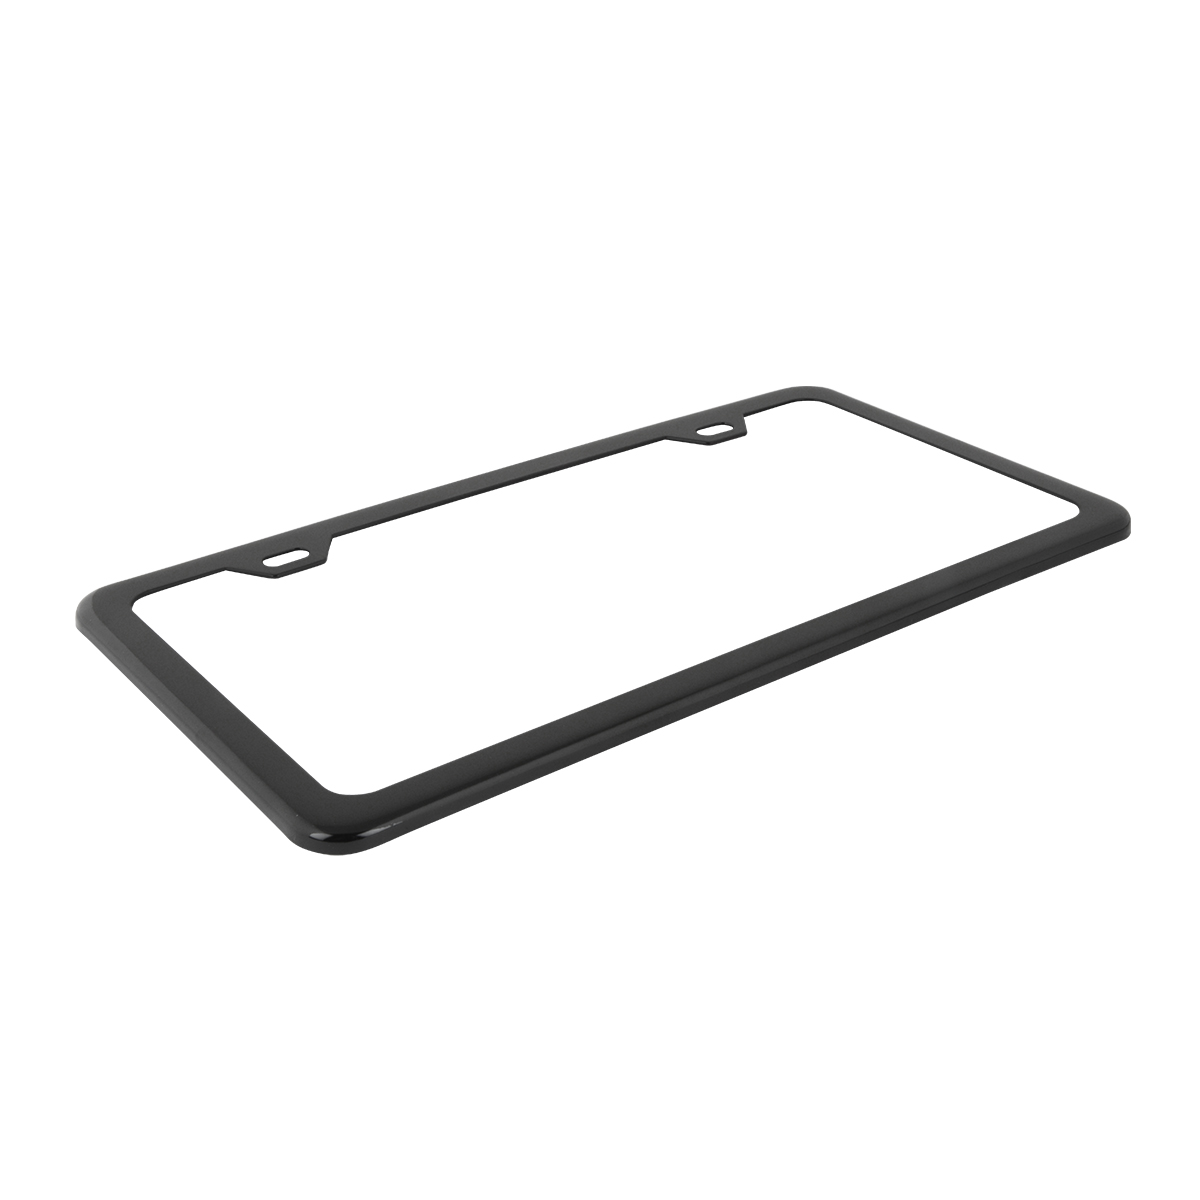 60403 Plain Semi-Gloss Black 2 Hole License Plate Frame - Top View